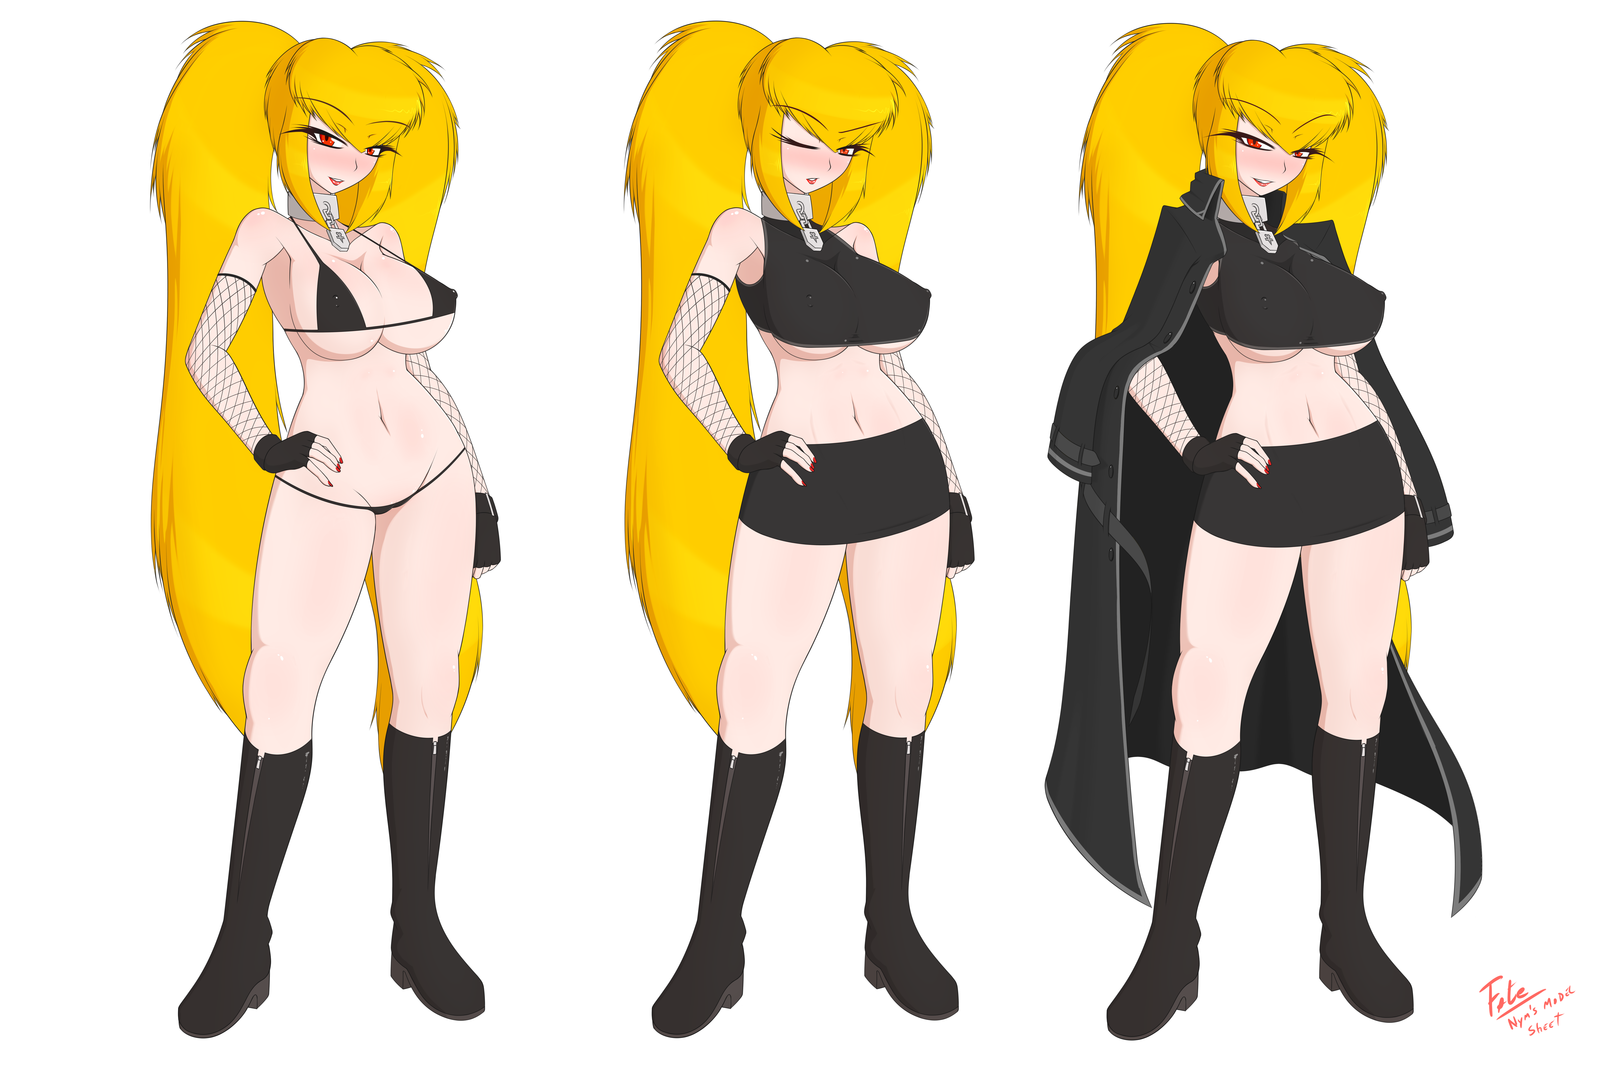 Nym's Model Sheet - Original Sin Project